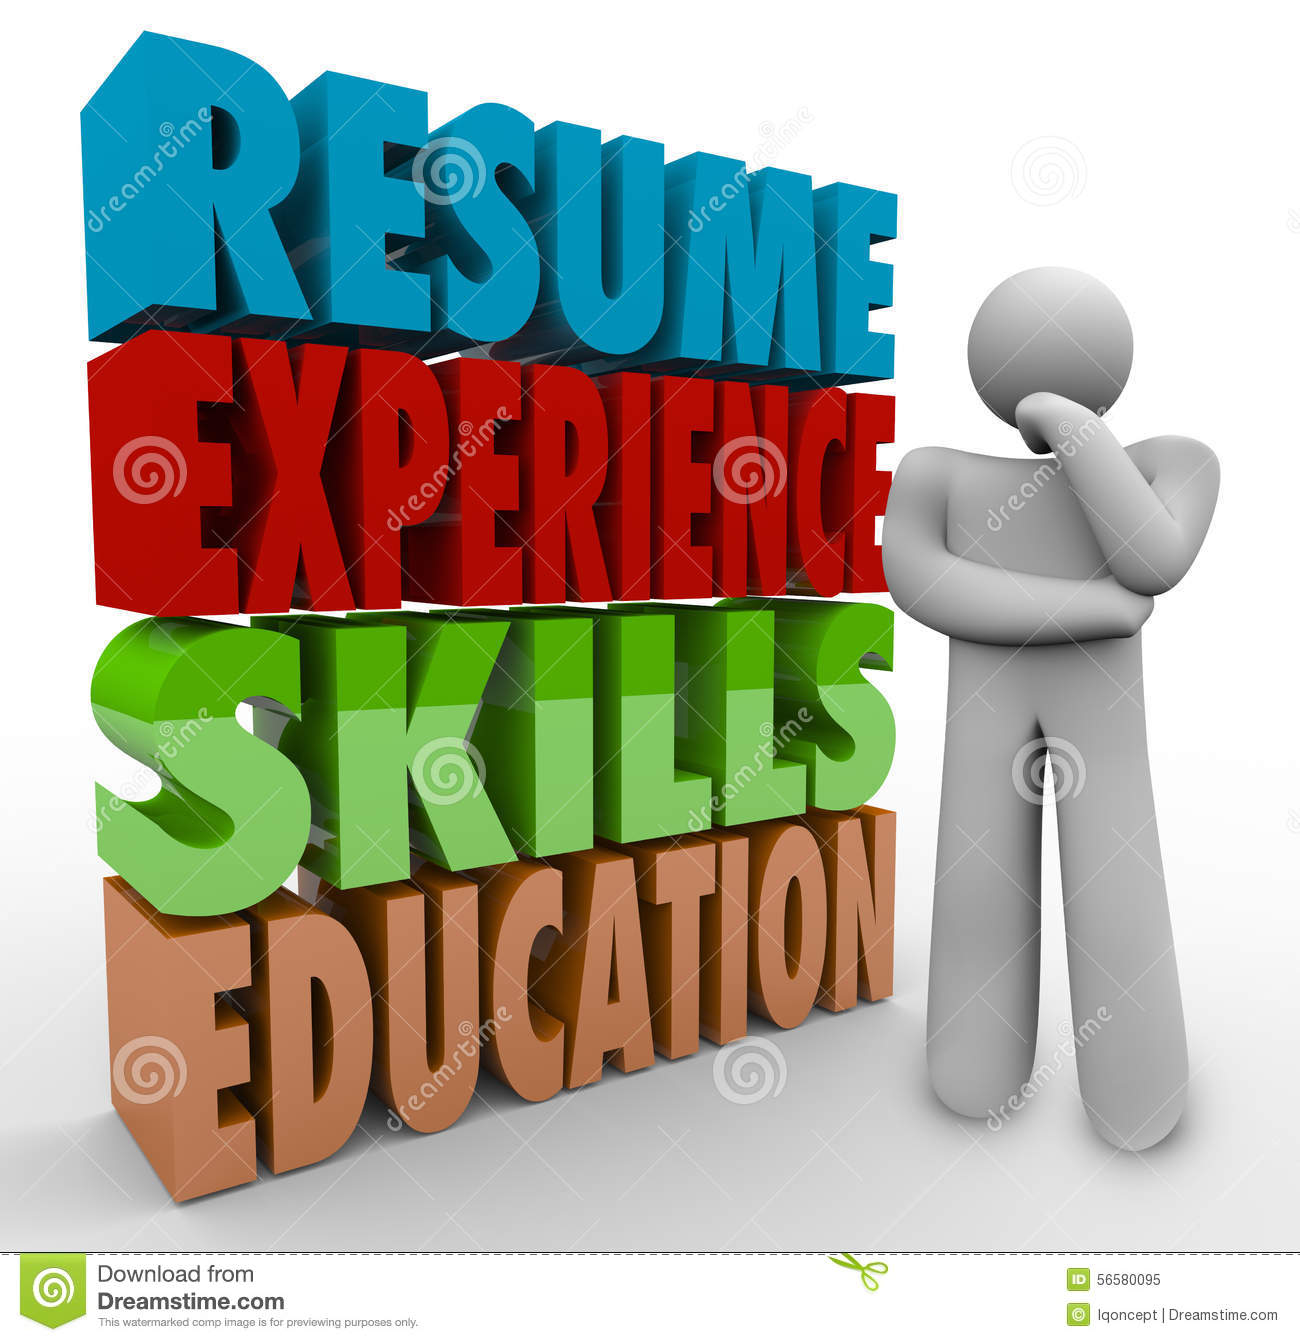 resume experience skills education thinker applying job qualifications stock illustration